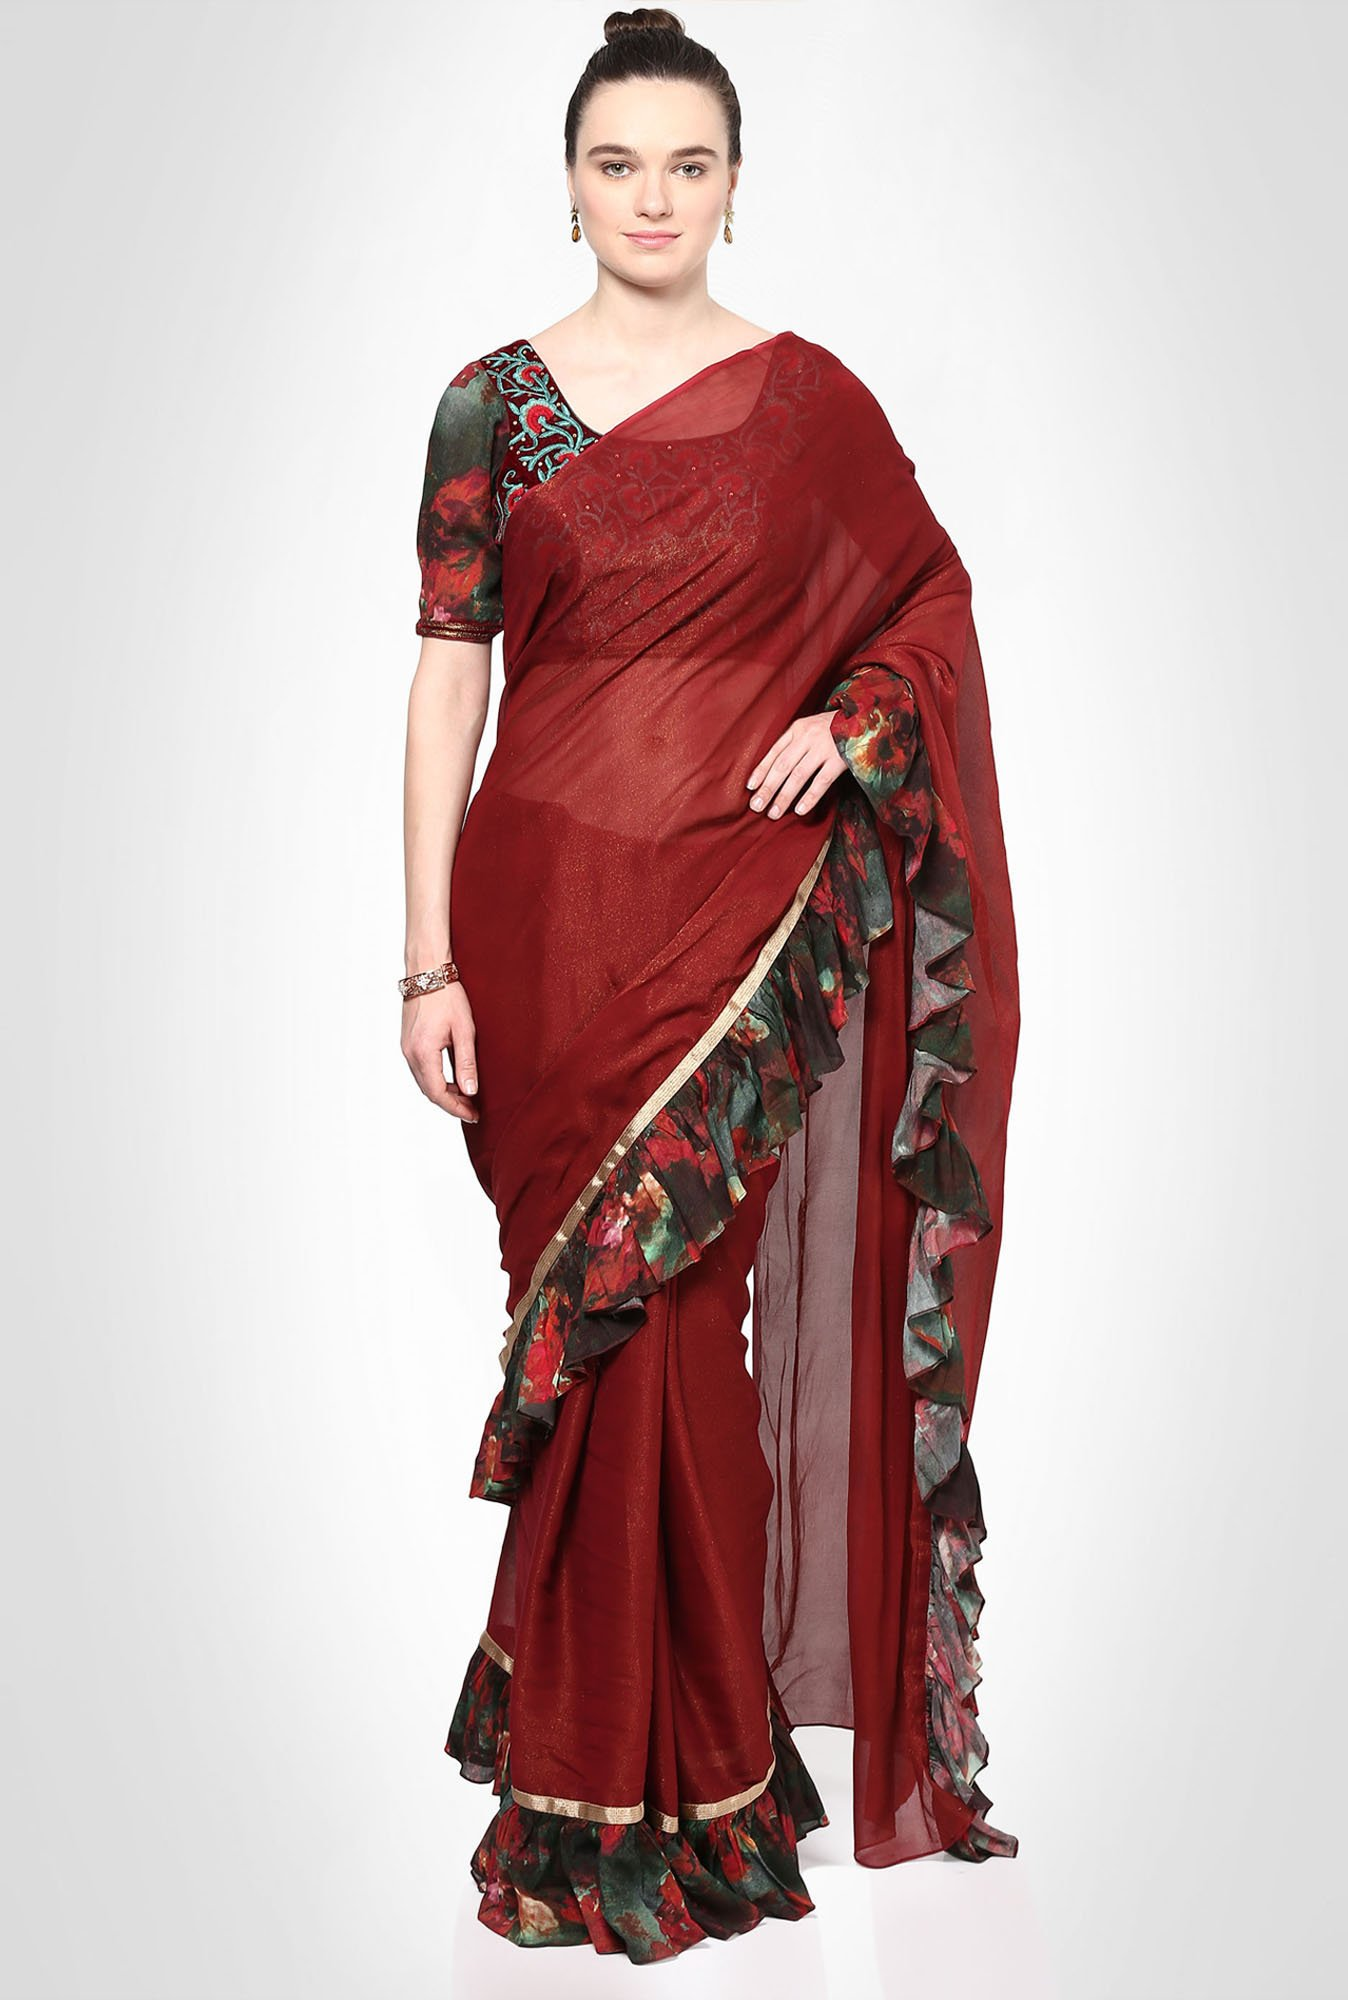 Kakondara Designer Maroon Saree With Frill Borders by Kimaya